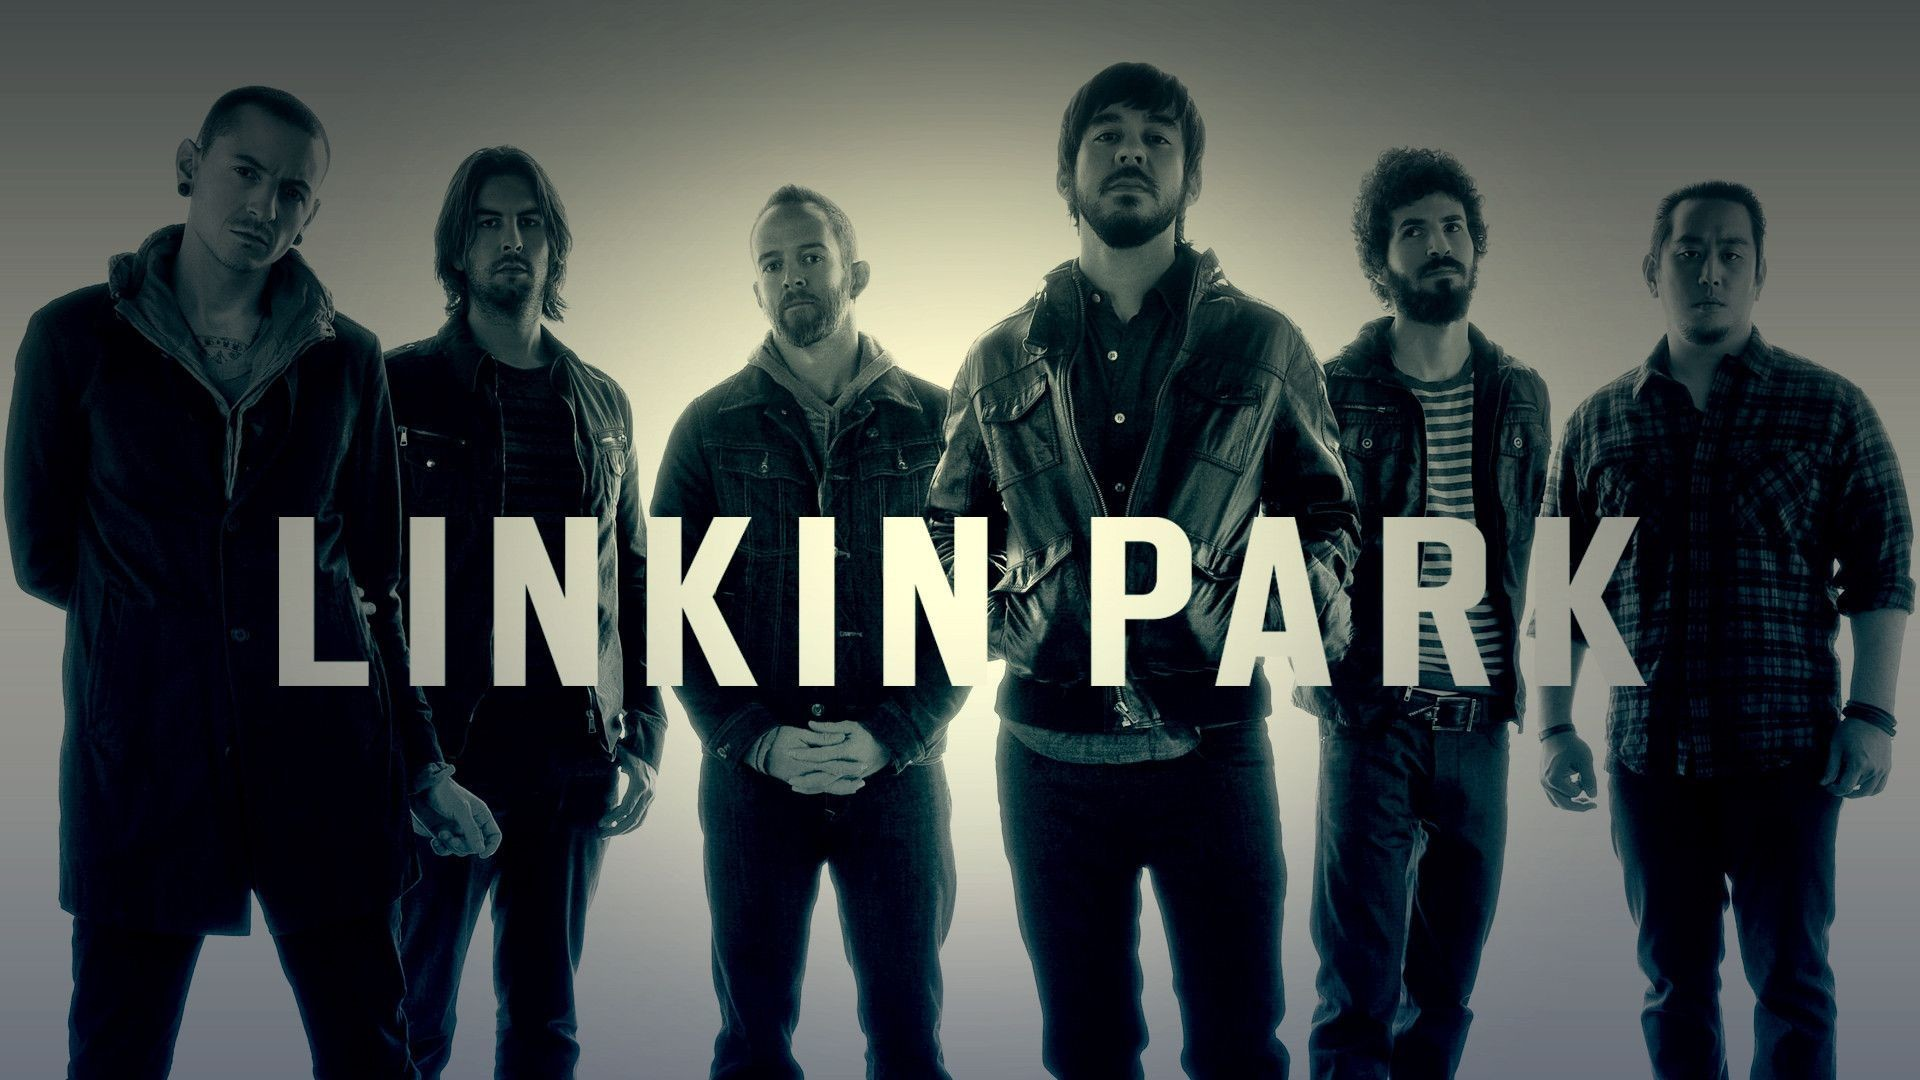 Linkin Park Wallpapers Pictures 1920×1080 Linkin Park Wallpapers High  Resolution (49 Wallpapers)